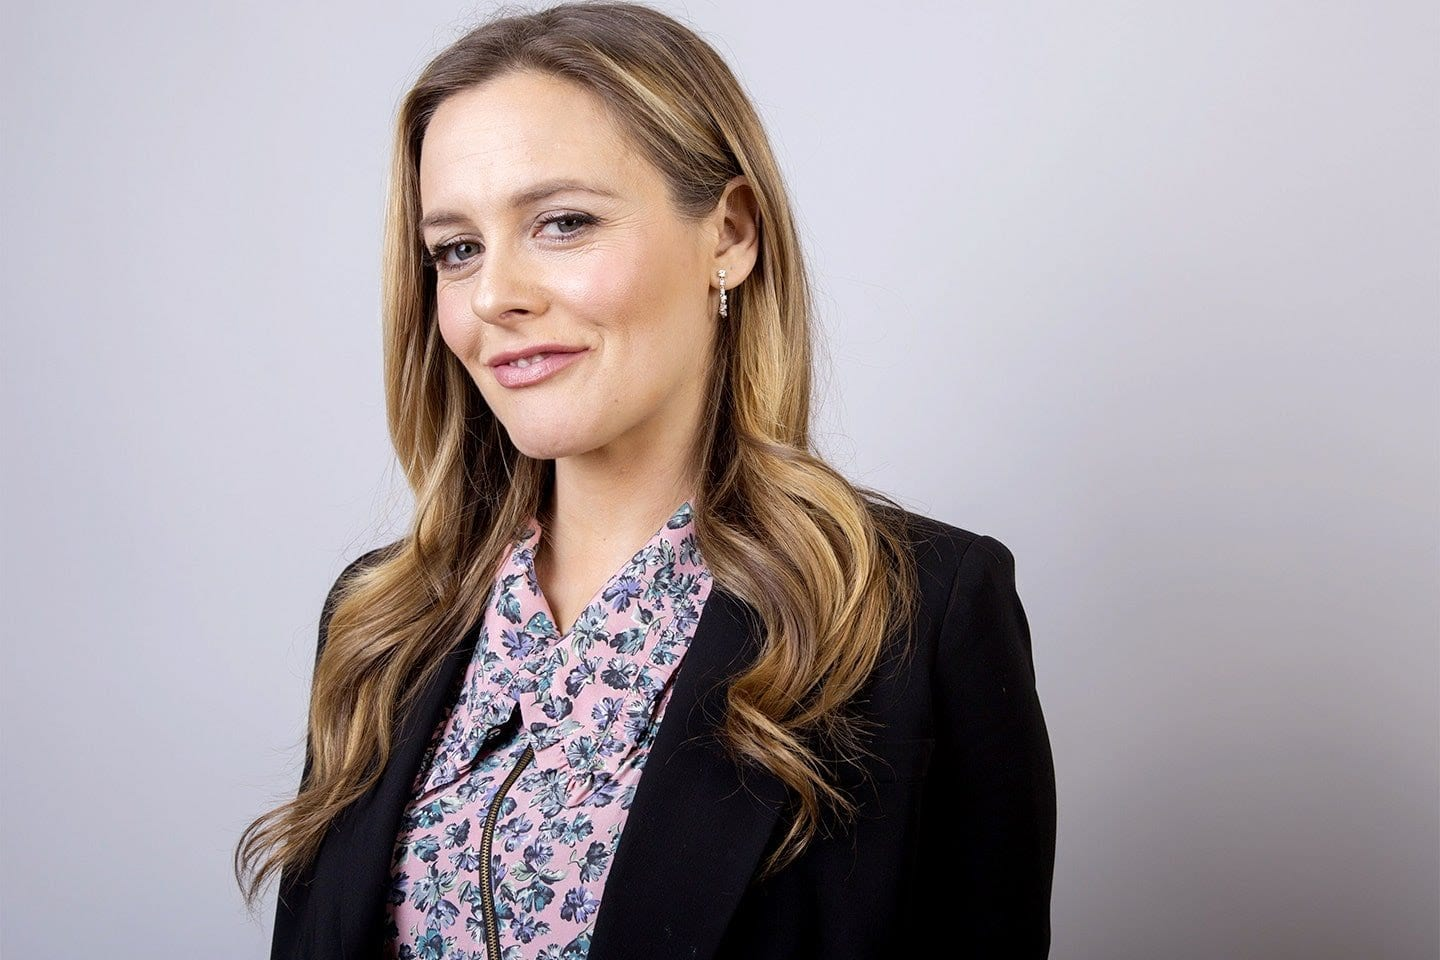 Alicia Silverstone, Actress and Model